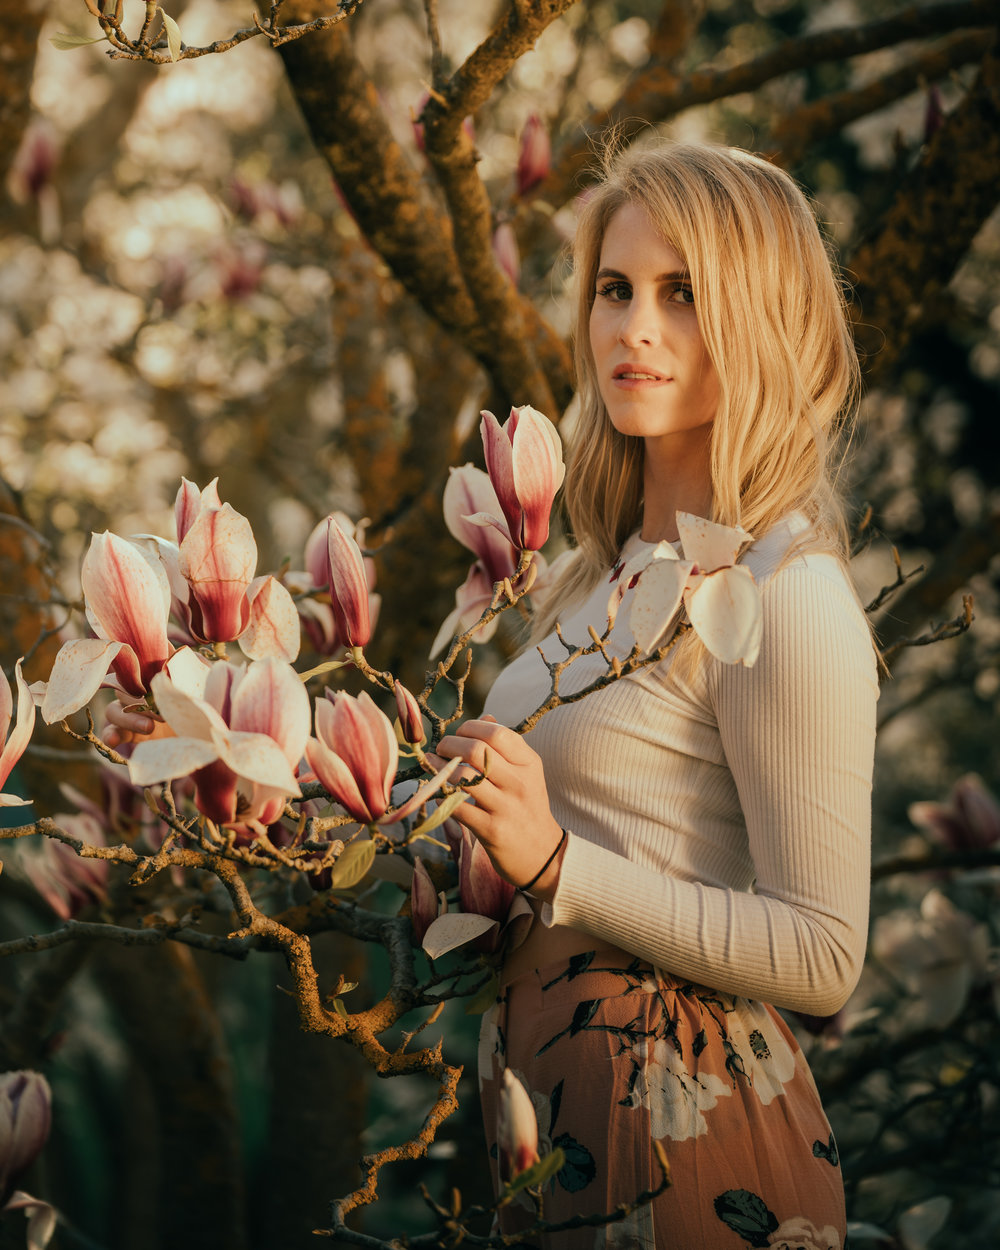 Mt lofty portrait session with Celia and Michelle in the beautiful Sakura bloom 2018